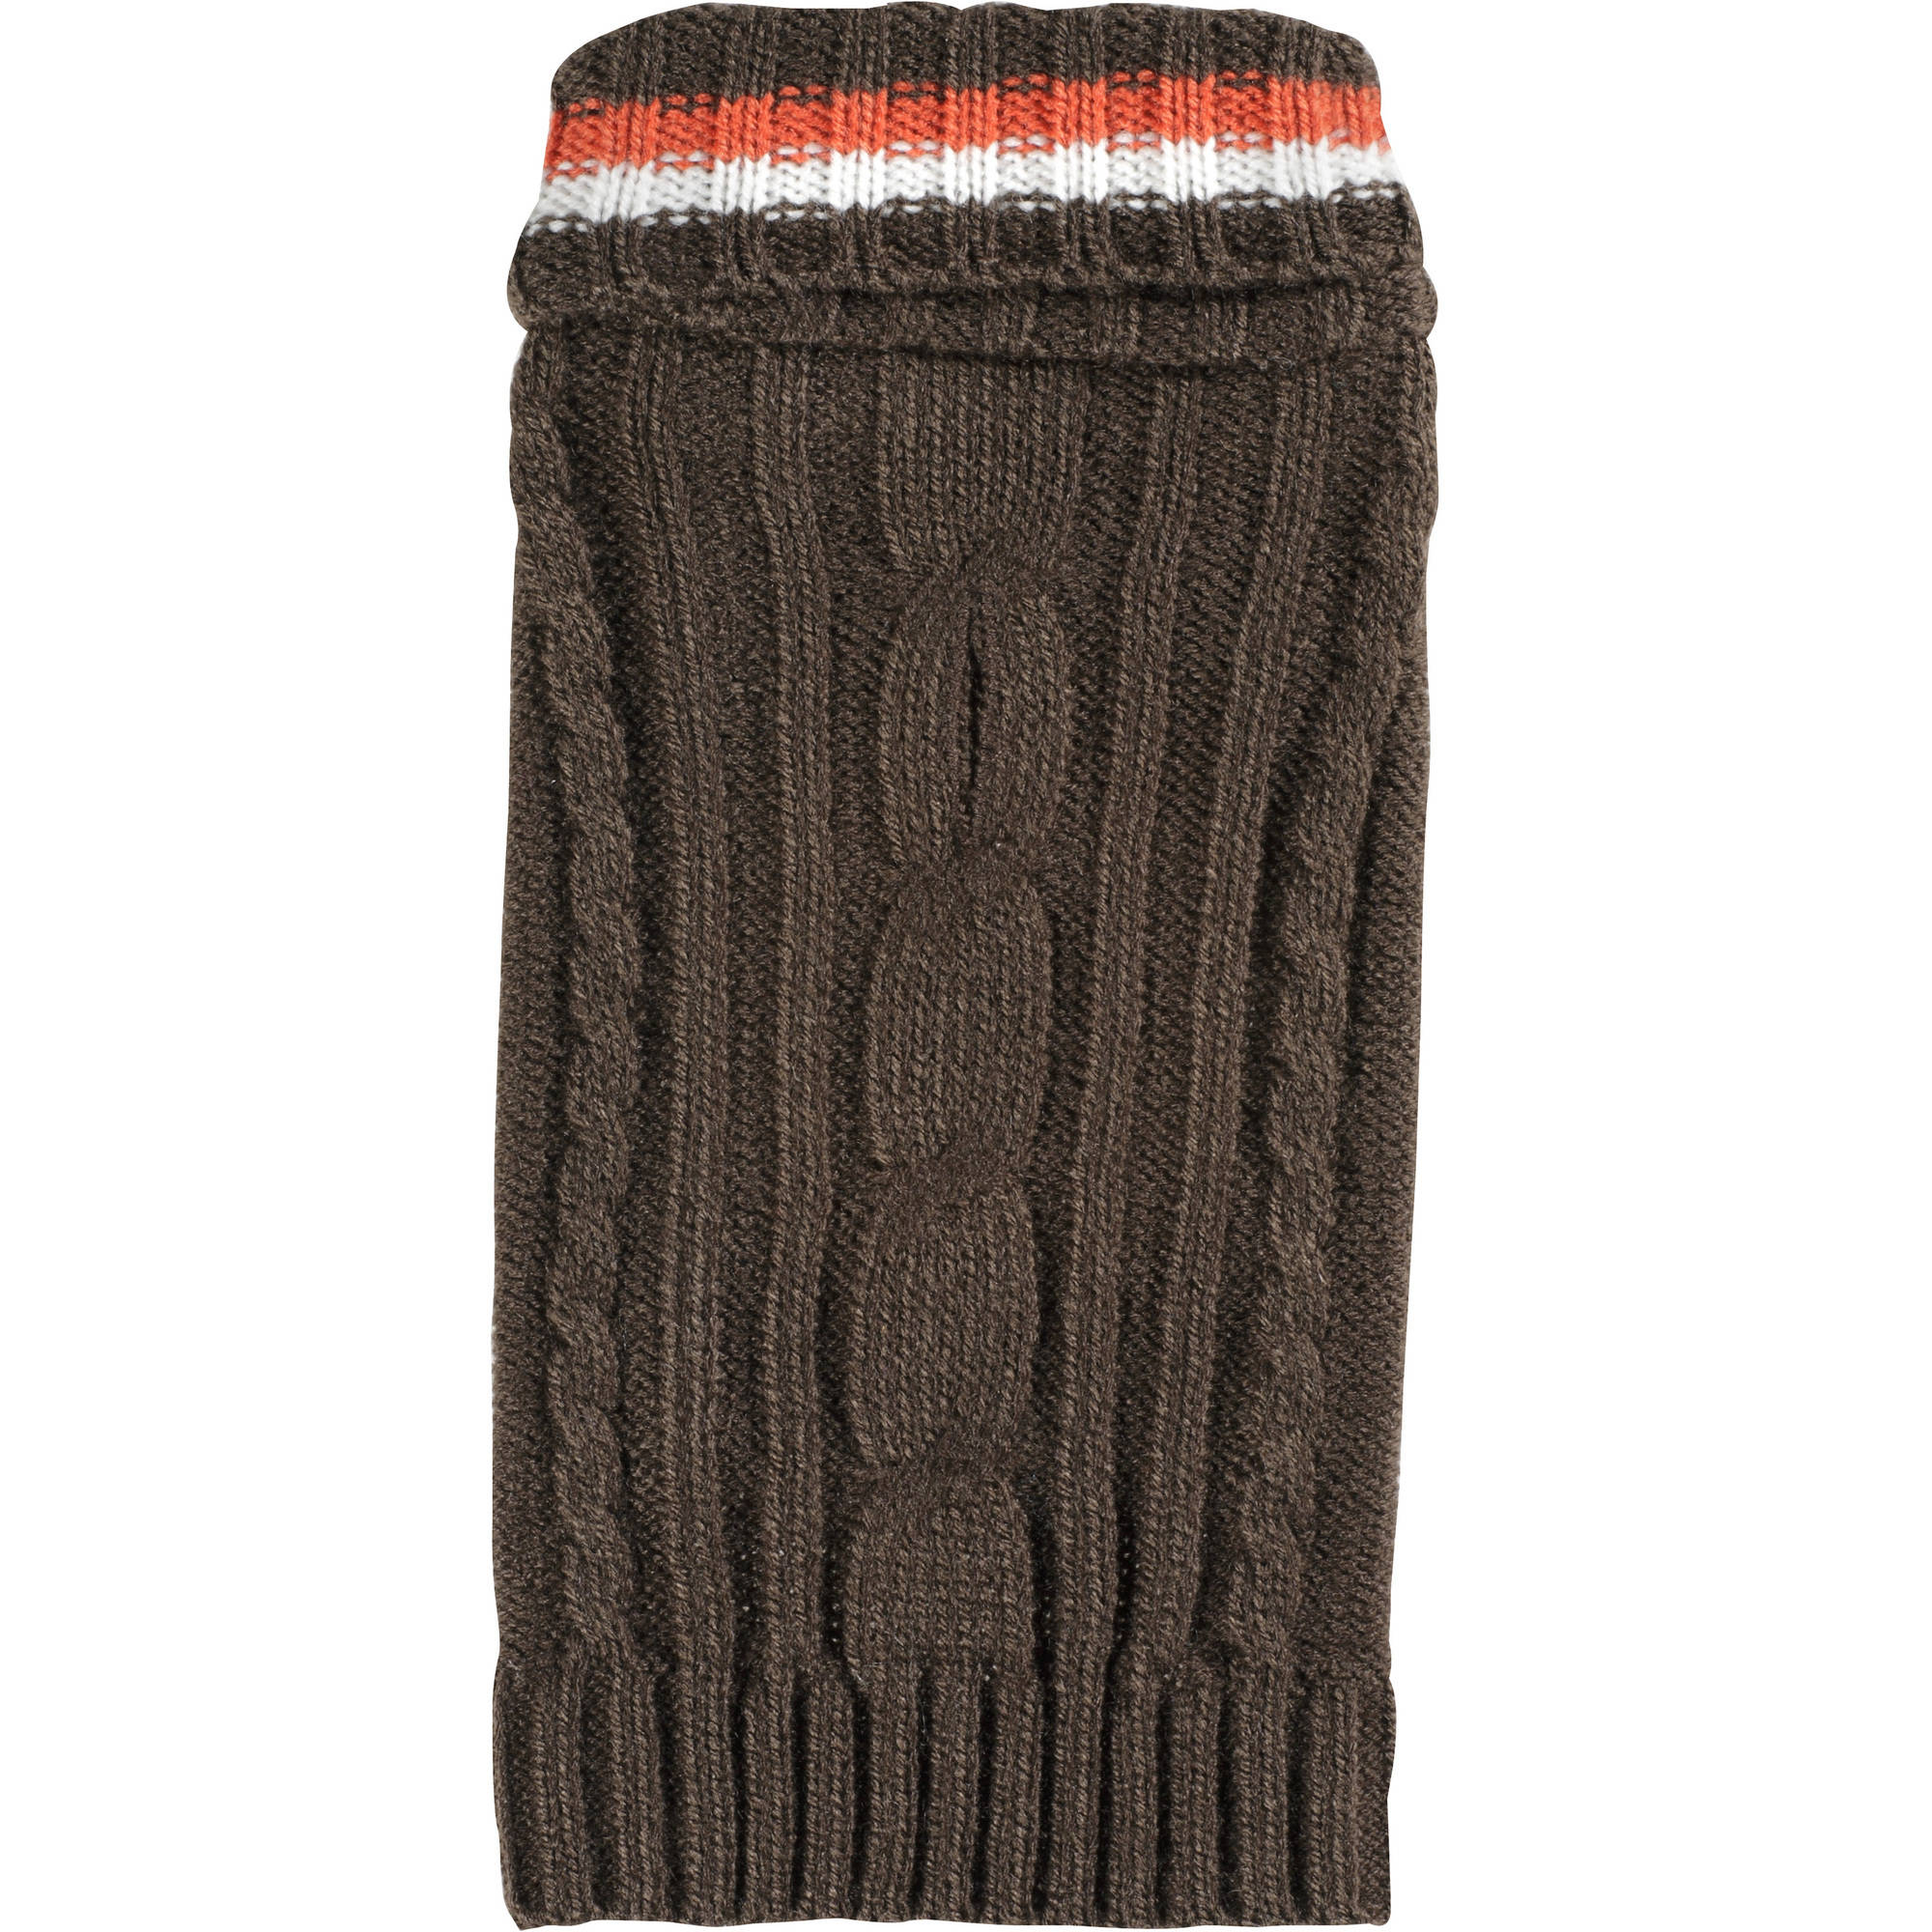 Cayre Group Solid Center Cable Turtleneck Dog Sweater, Coffee House, Multiple Sizes Available